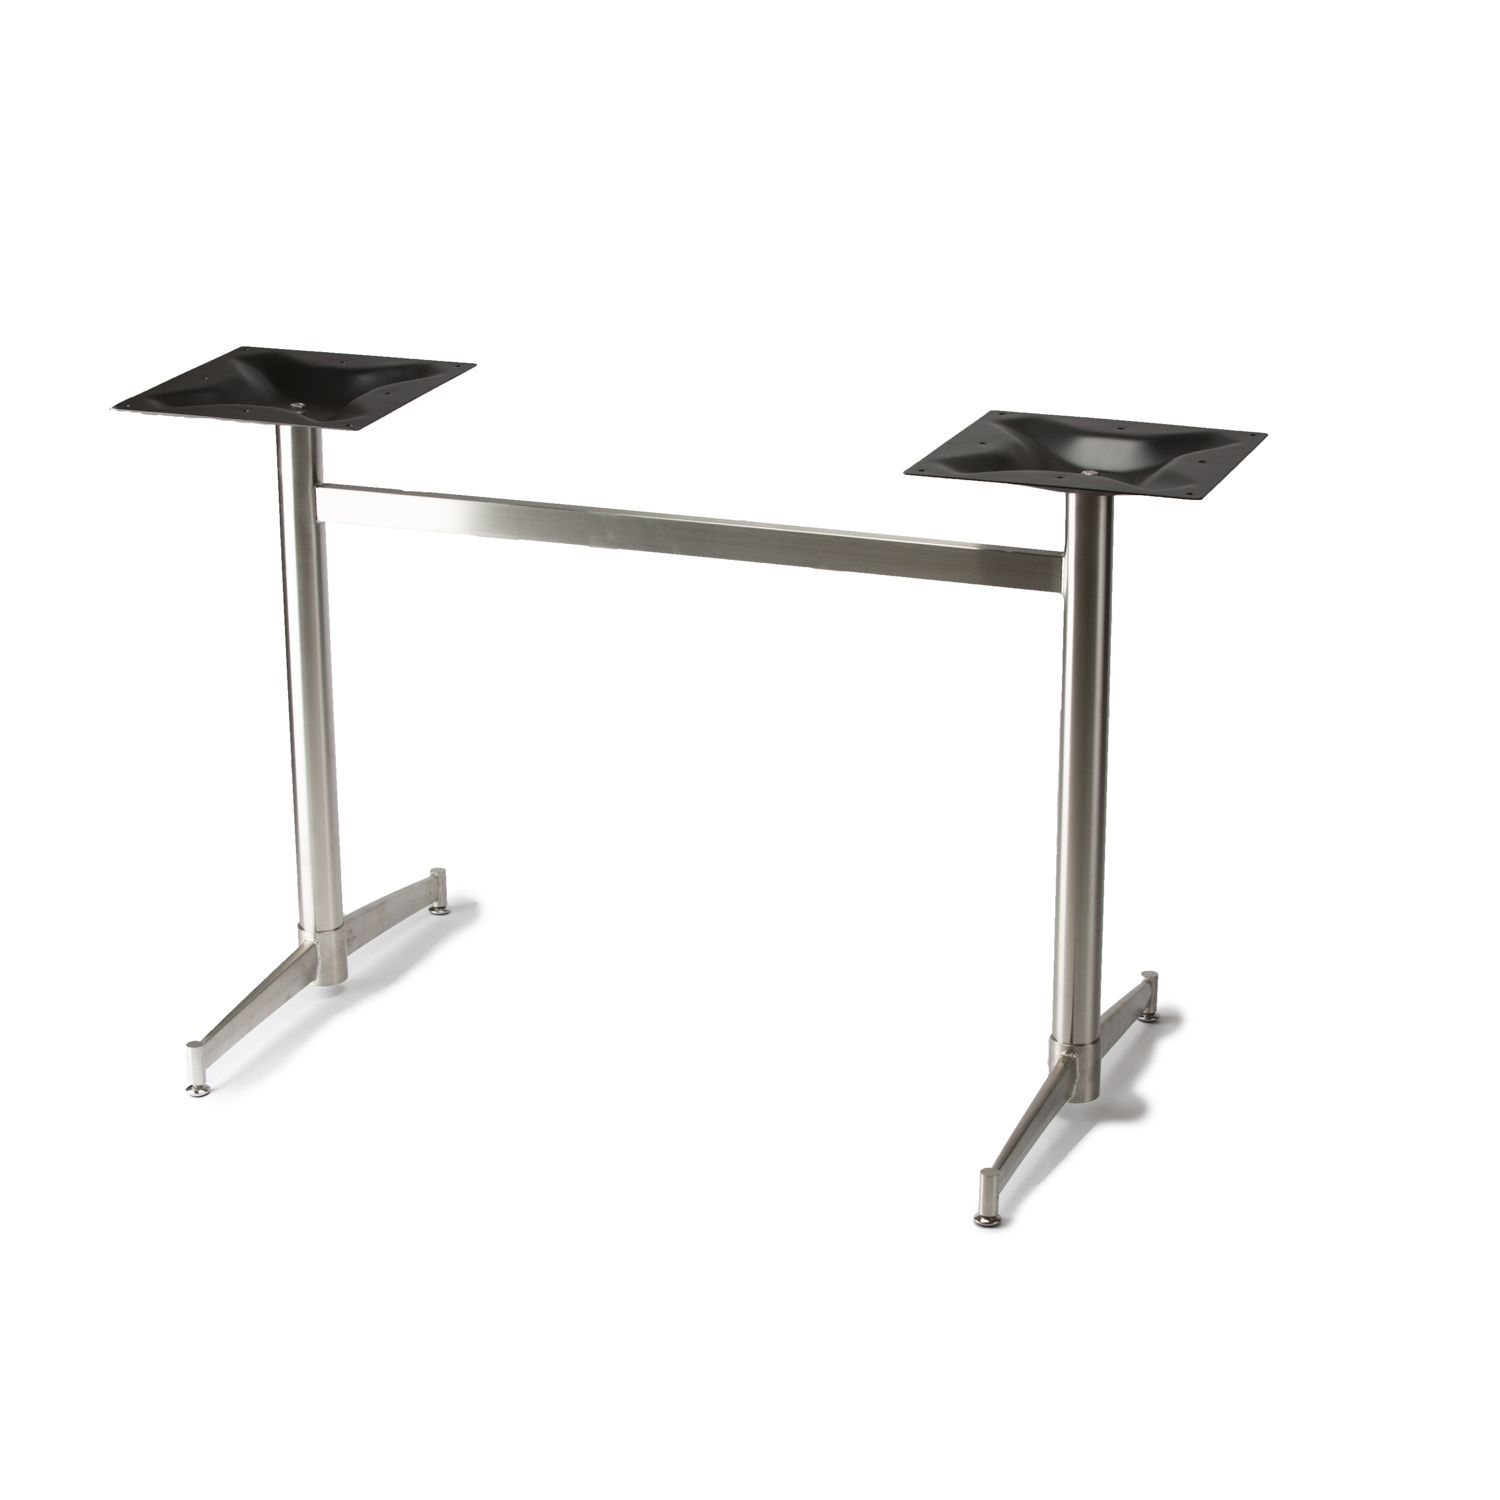 "Turin-2x2 - Stainless Steel Table Base - Dining Height (28 1/4"")"